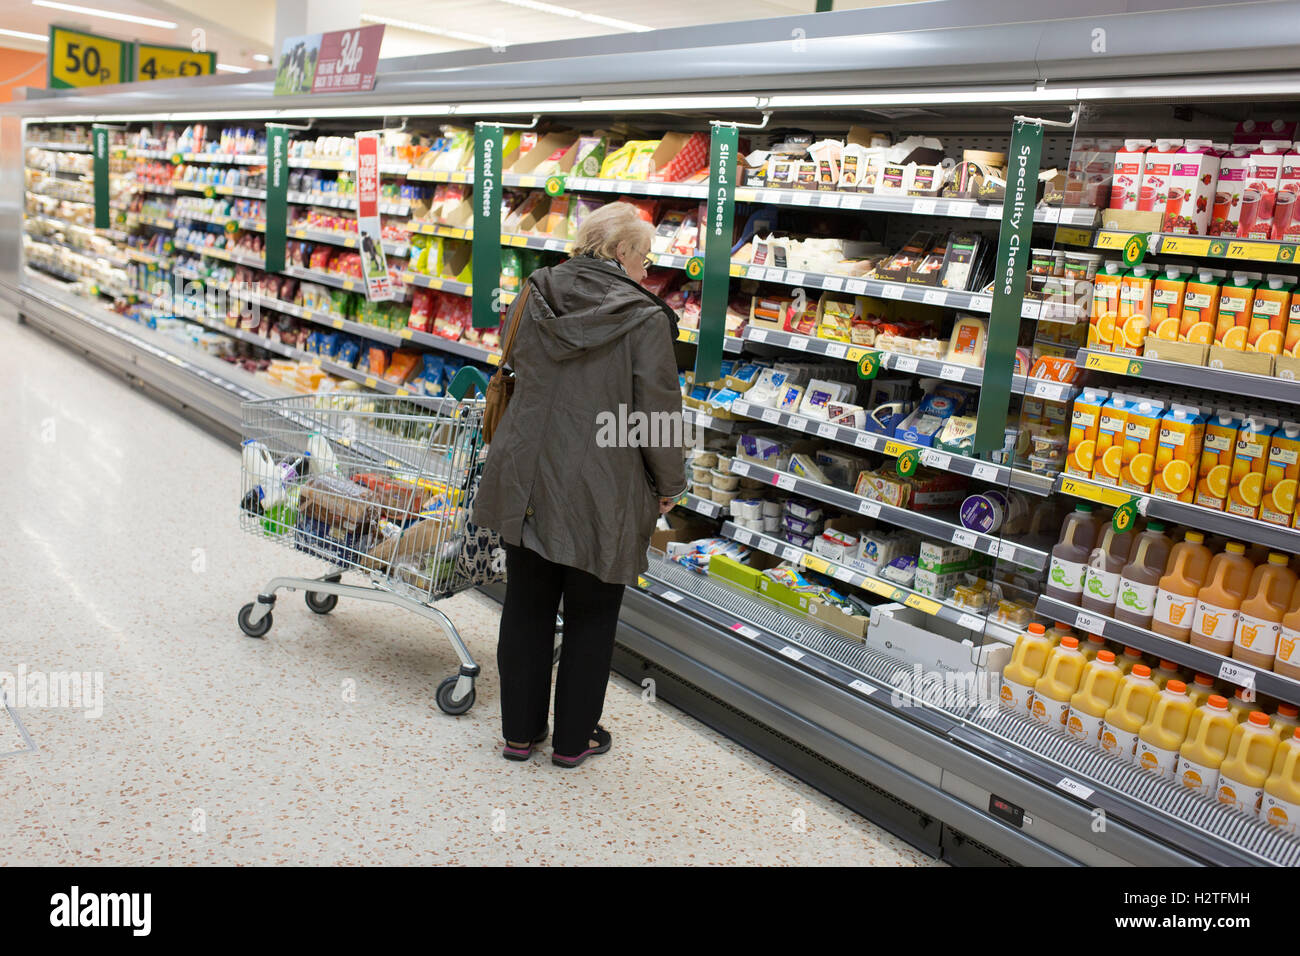 A woman shopping in a Morrisons supermarket - Stock Image